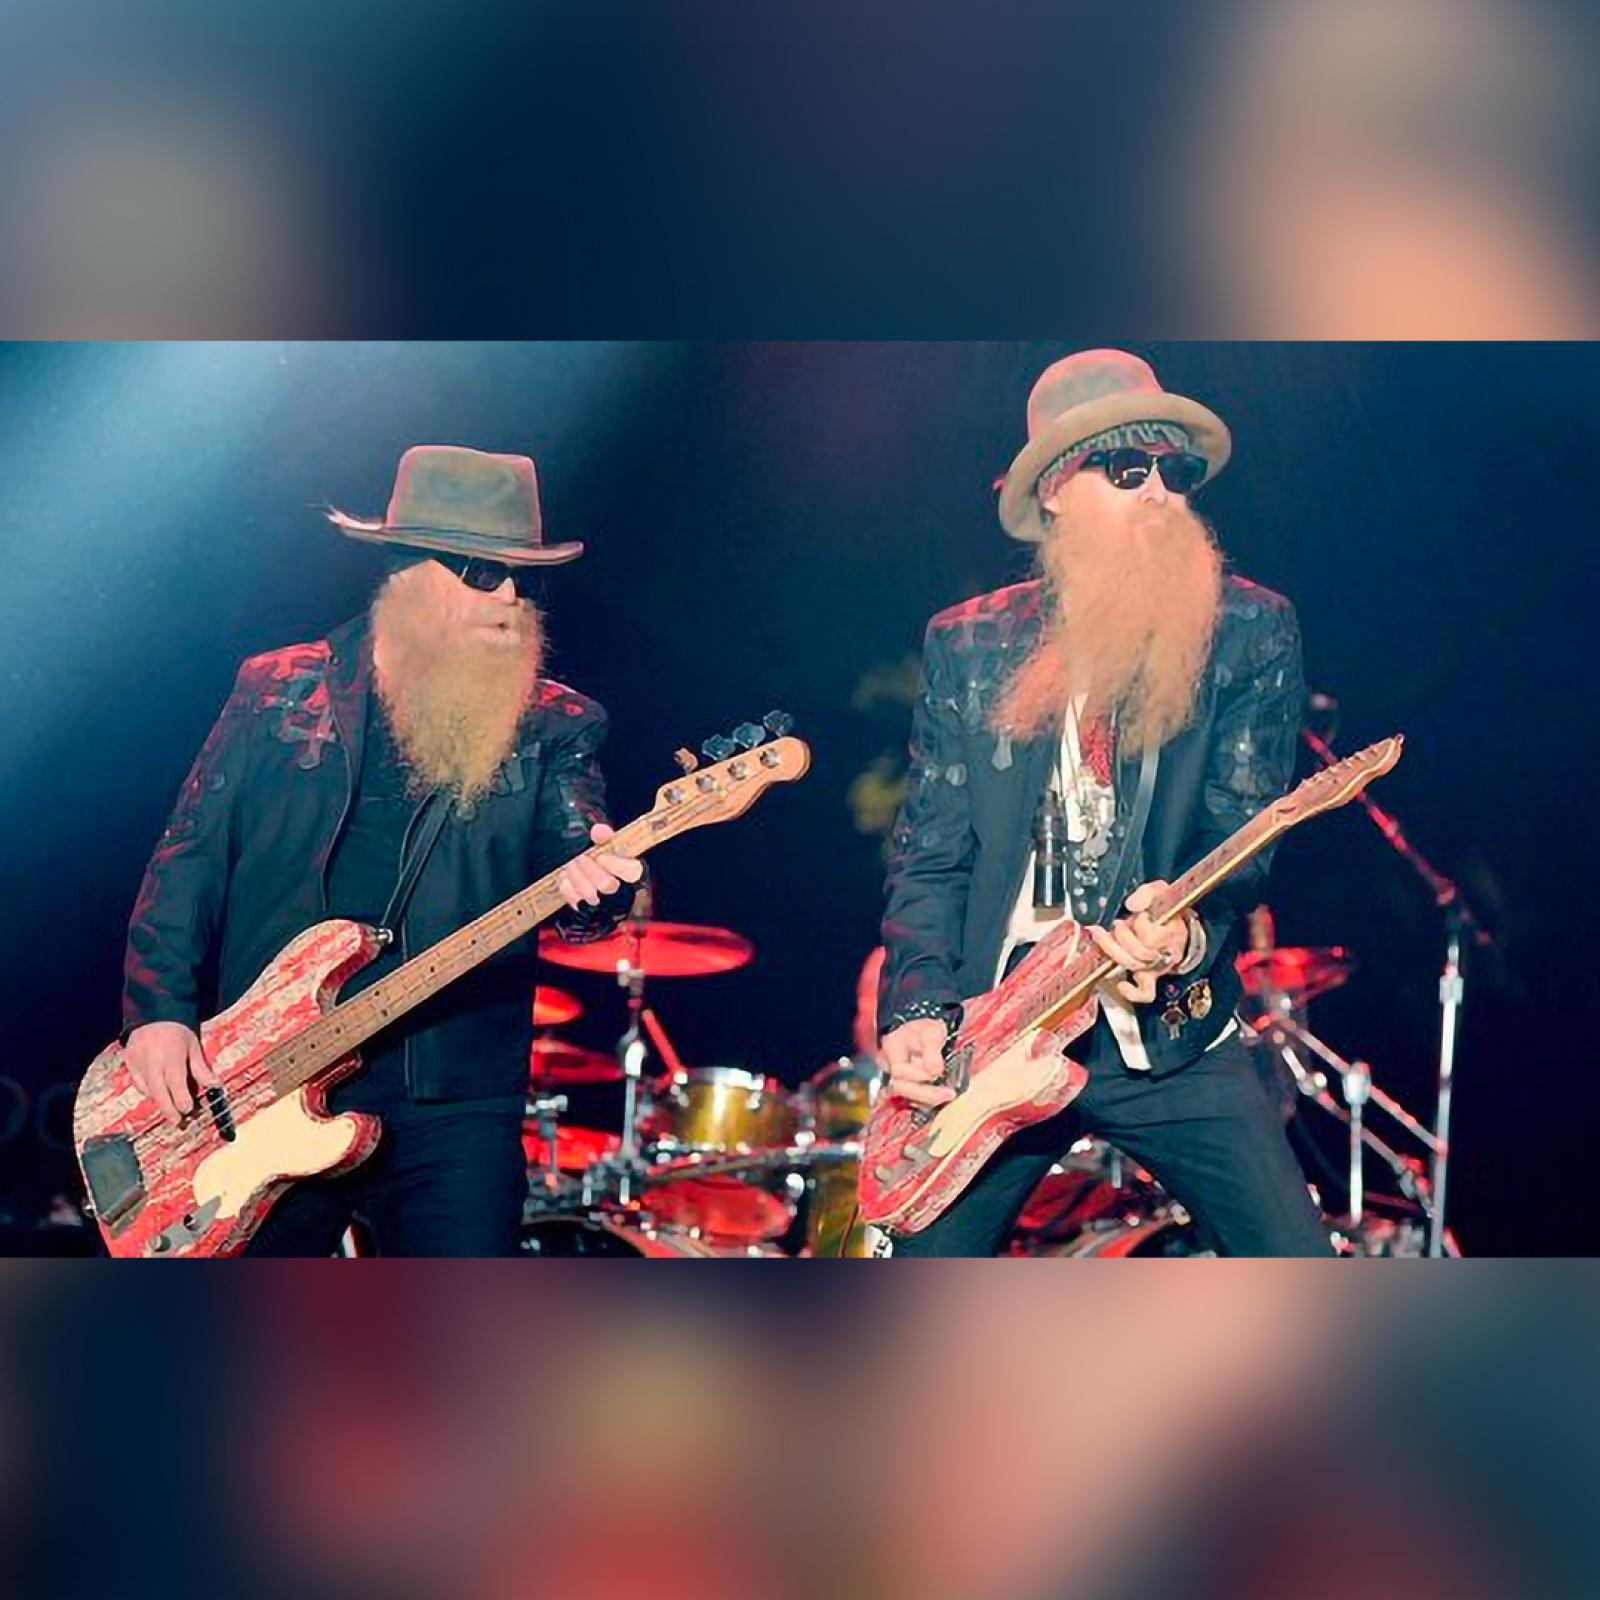 official website zz top